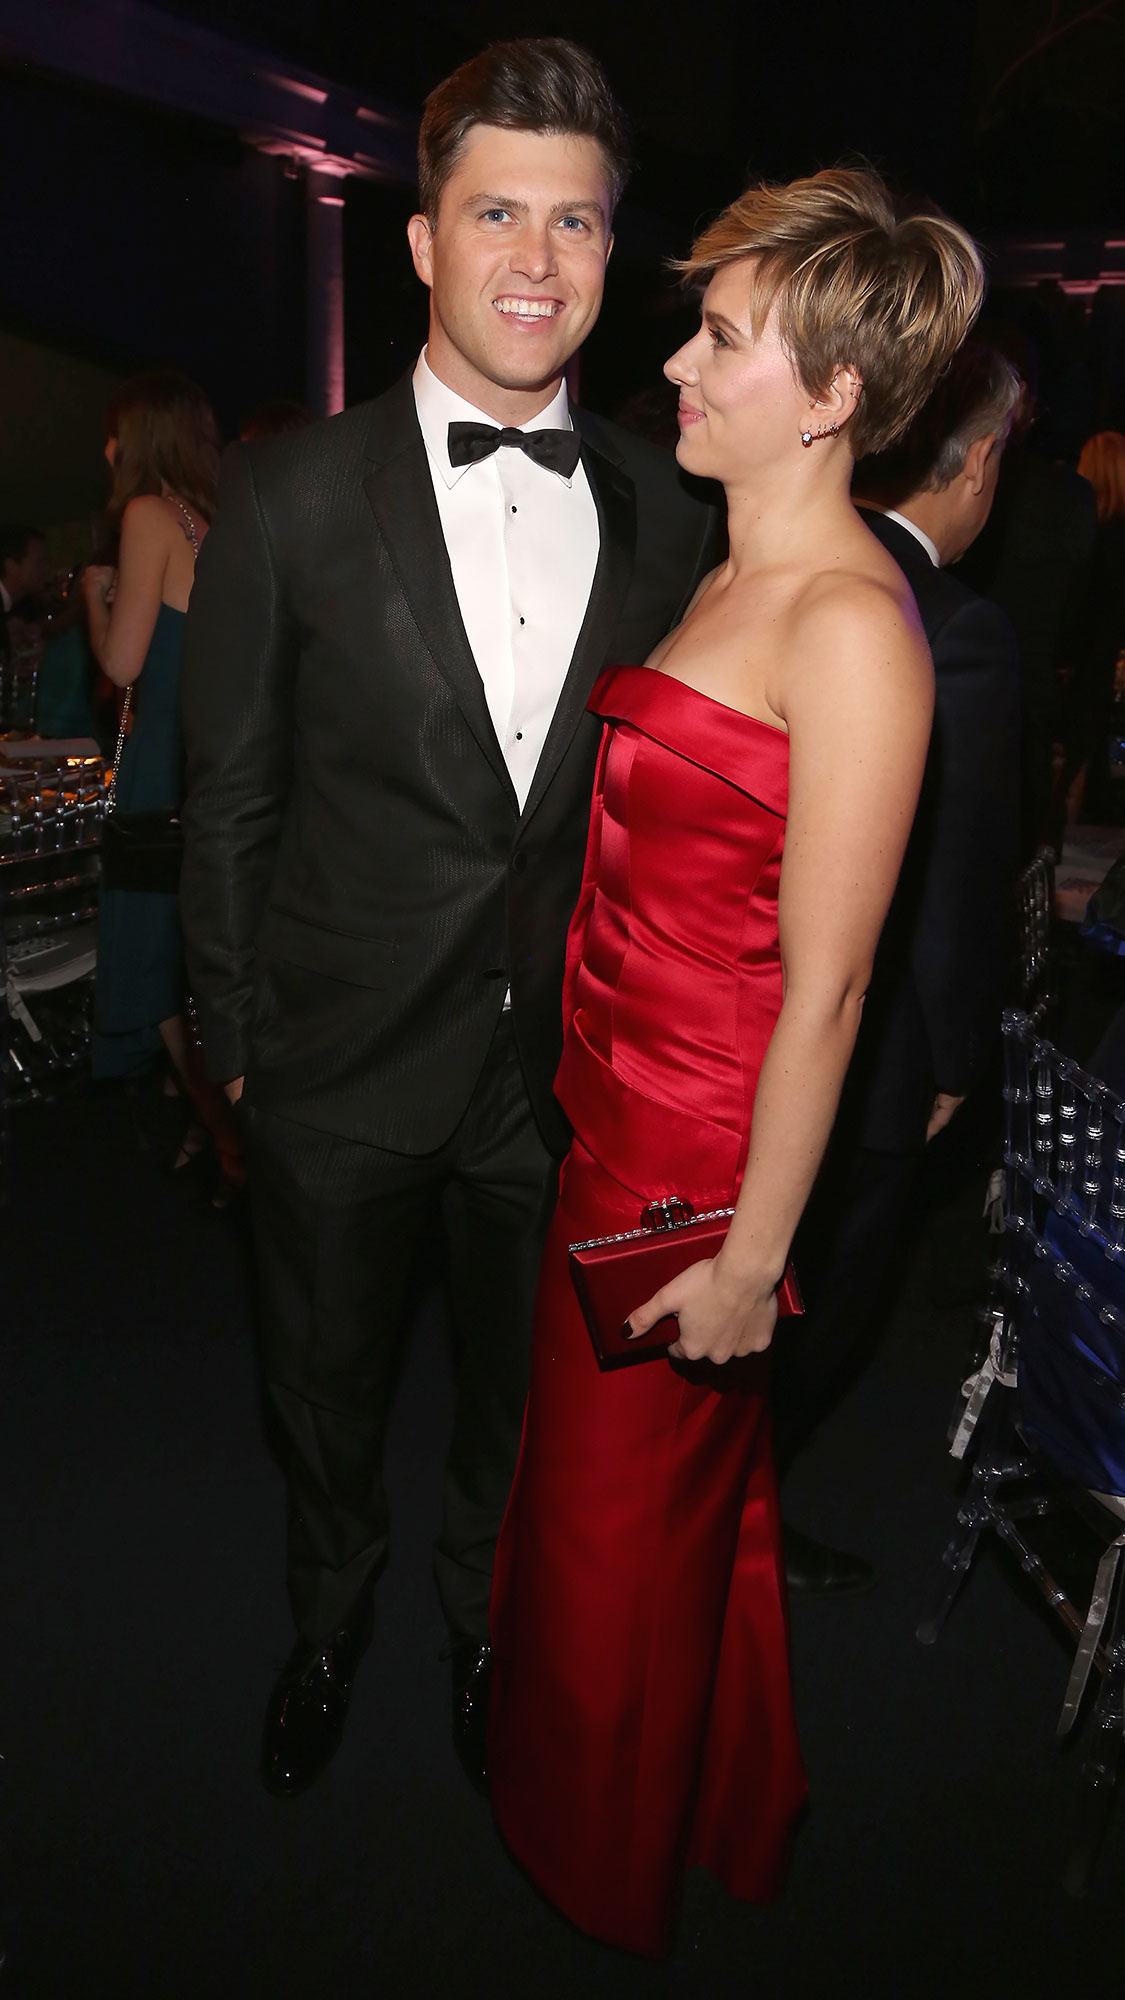 Scarlett Johansson and Colin Jost Relationship Timeline American Museum of Natural History - Johansson and Jost posed together at the American Museum of Natural History Gala, where she wore a red dress and he looked sharp in a black tuxedo.